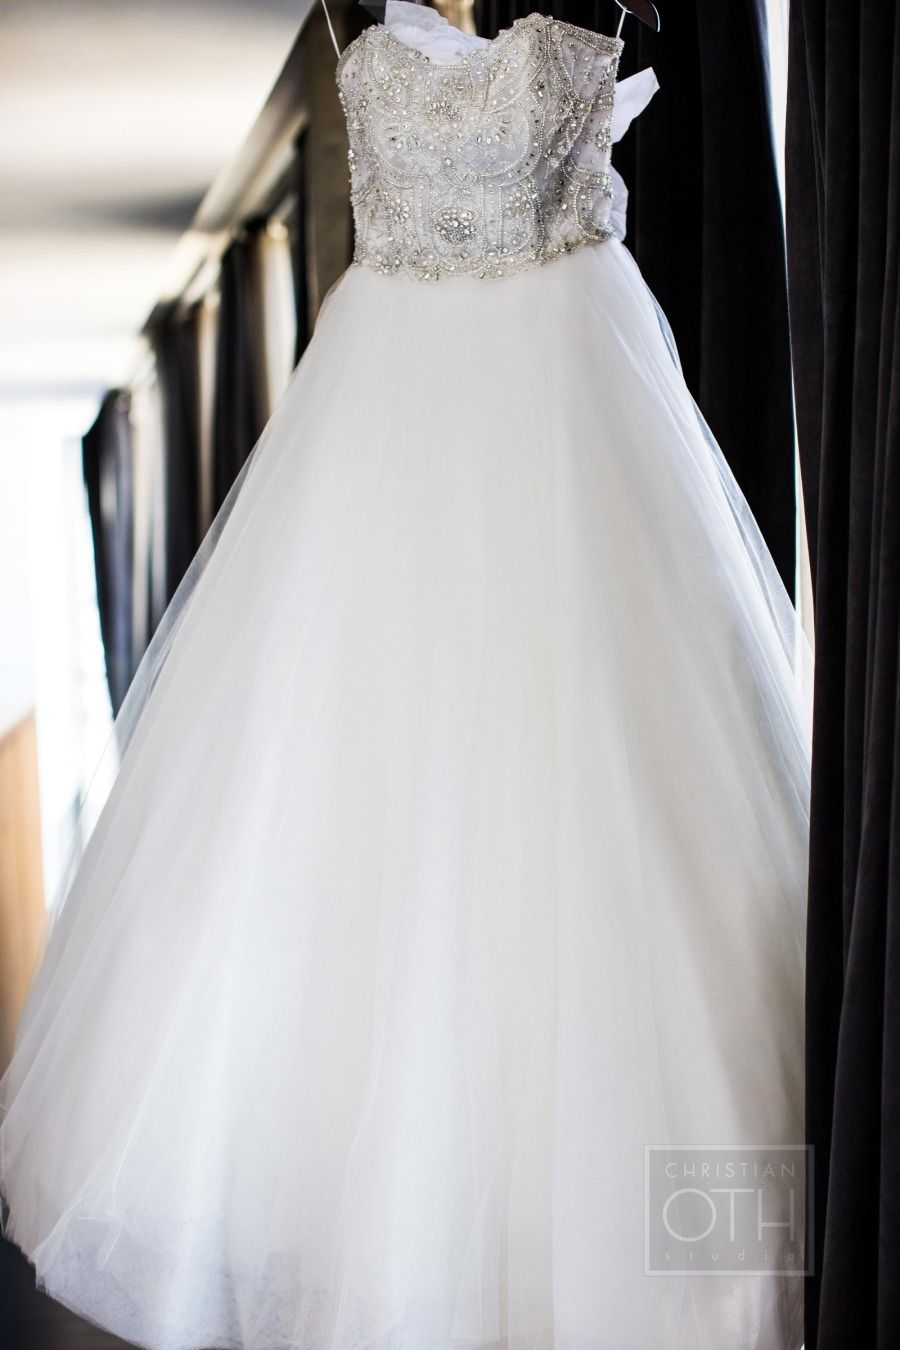 Badgley mischka wedding dress  Traditional NYC Wedding at Gotham Hall  Pinterest  Badgley mischka